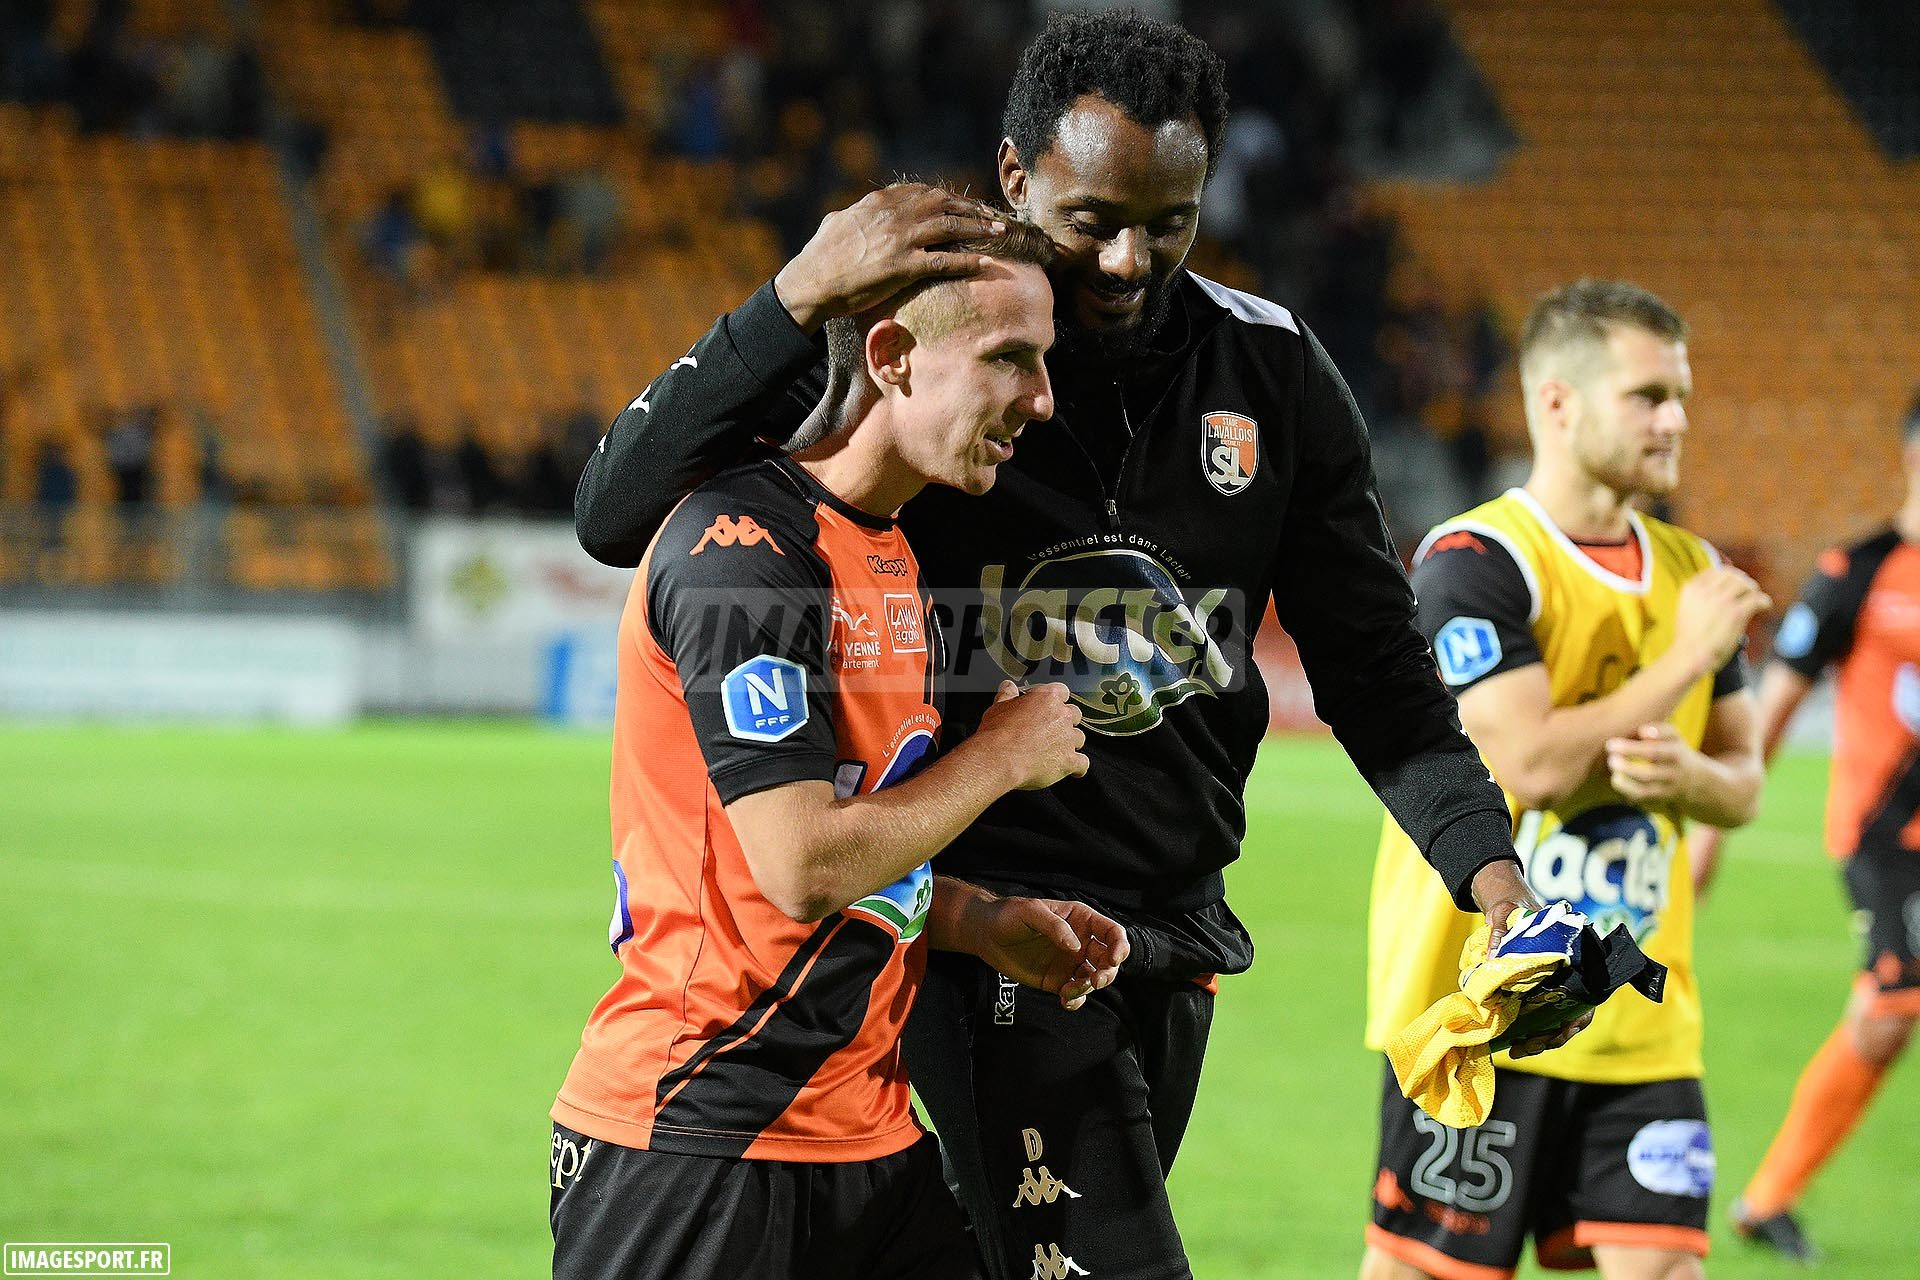 Kevin PERROT(Stade Lavallois) / RINCON (Stade Lavallois)